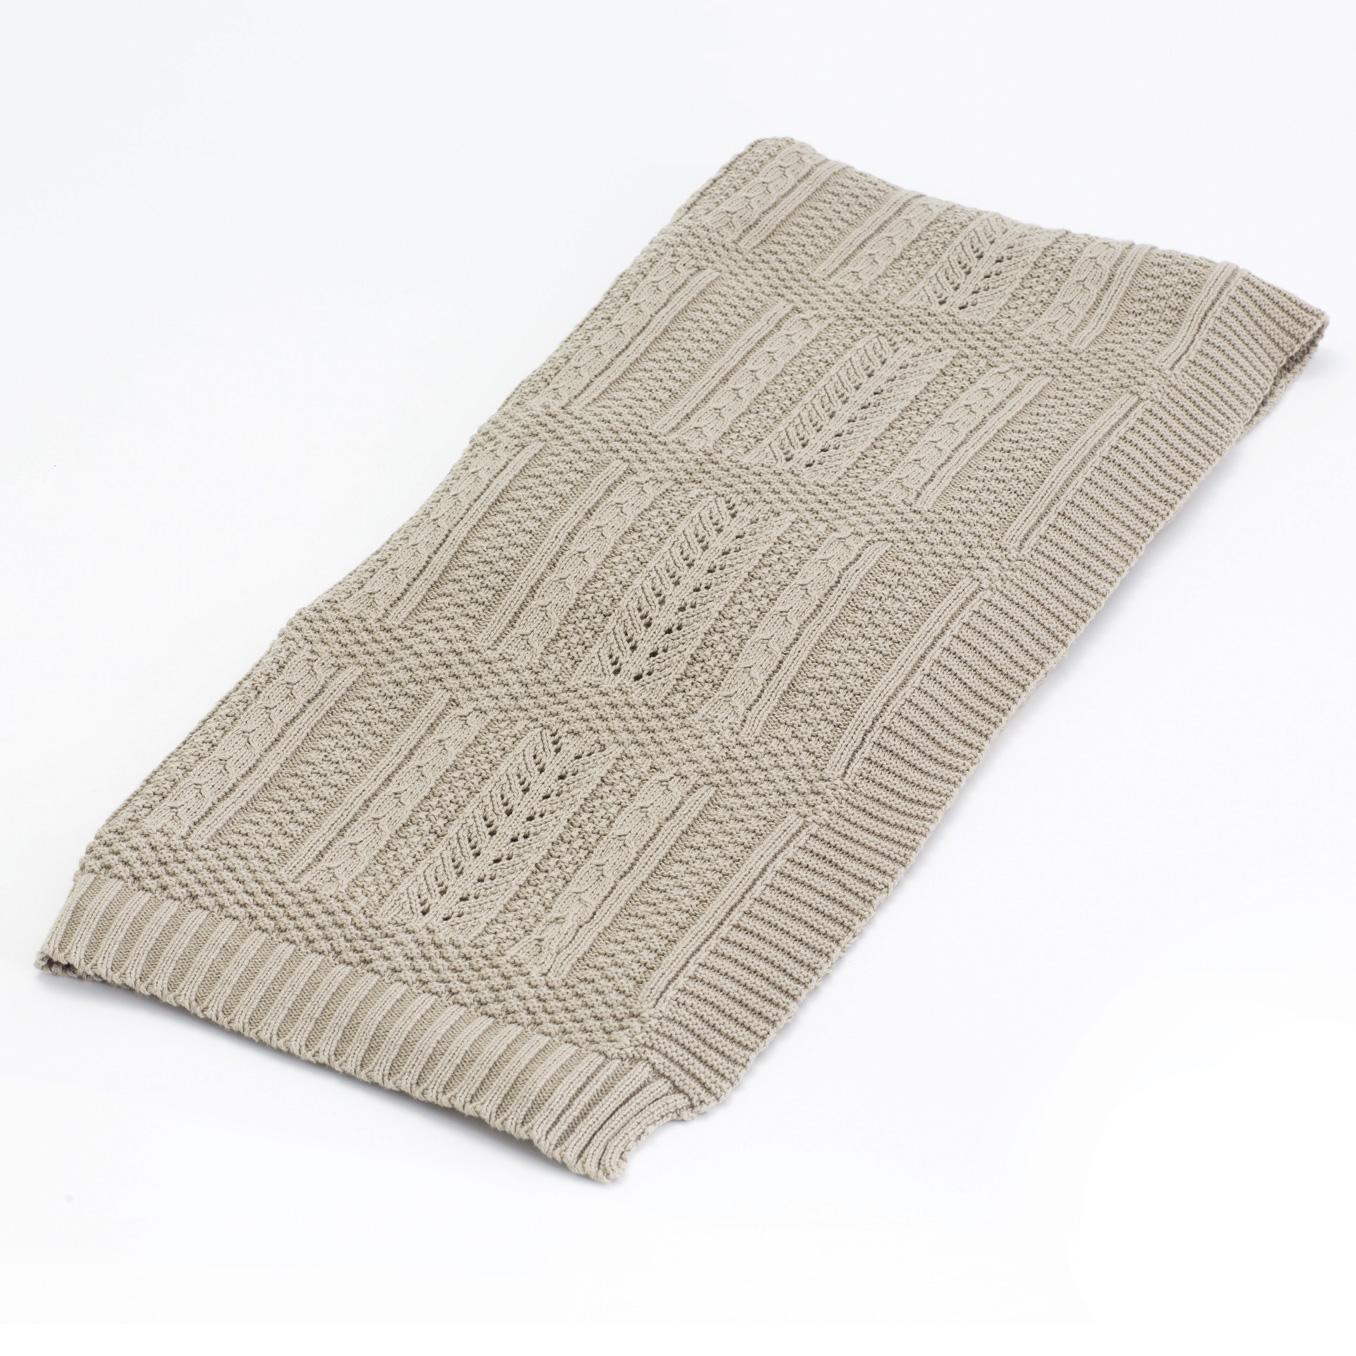 Chalet Rustic Lodge Beige Cotton Loomed Throw Blanket